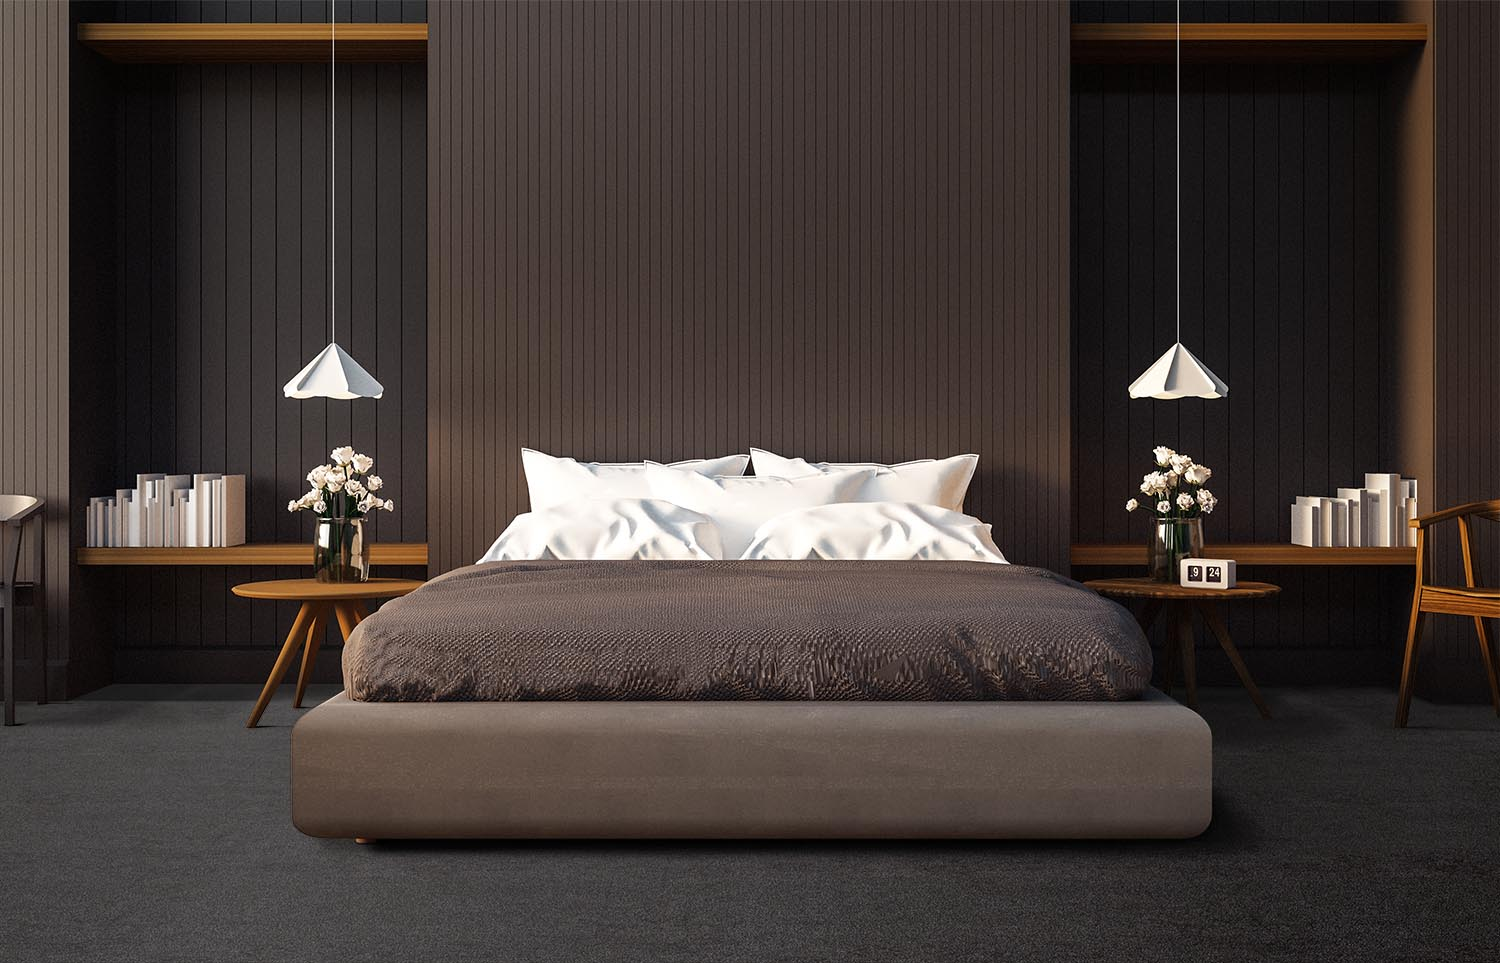 Softology - S301 - Abyss contemporary bedroom